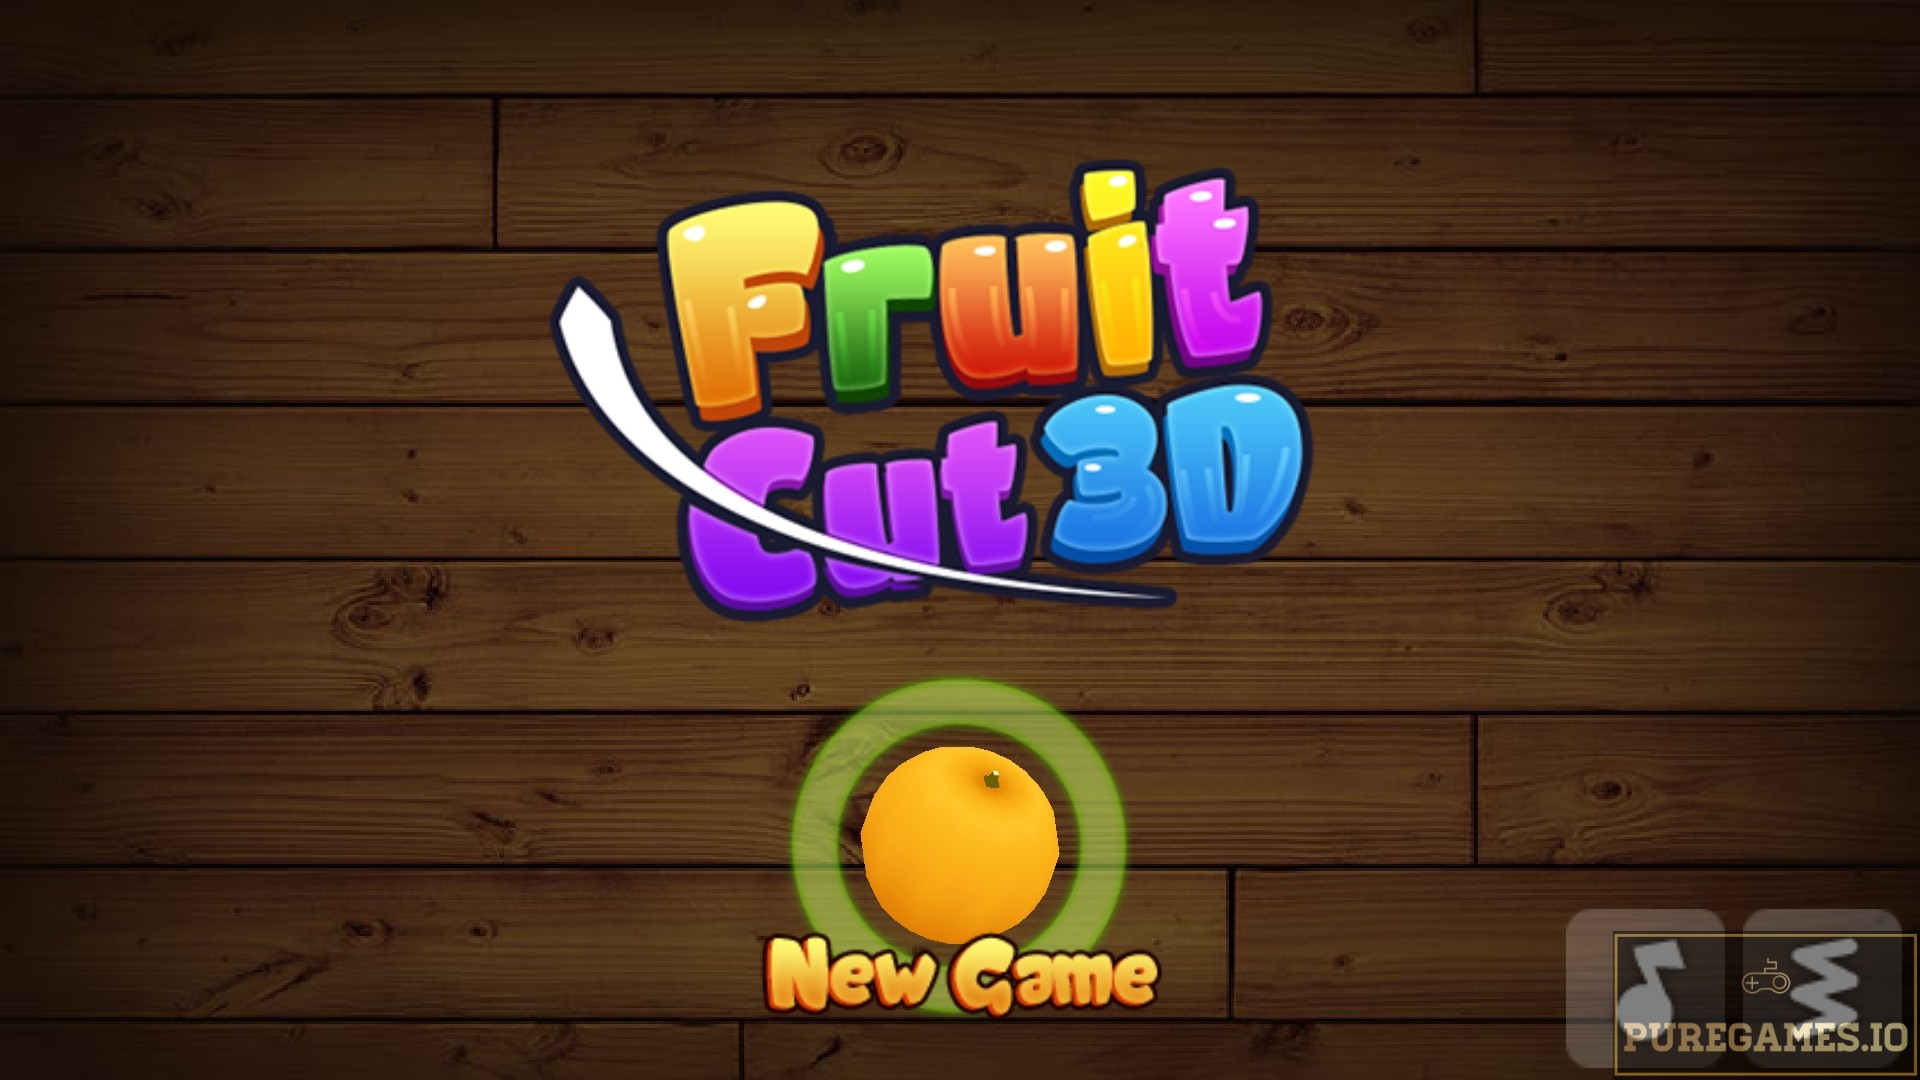 Download Fruit Cut 3D MOD APK - For Android/iOS 10